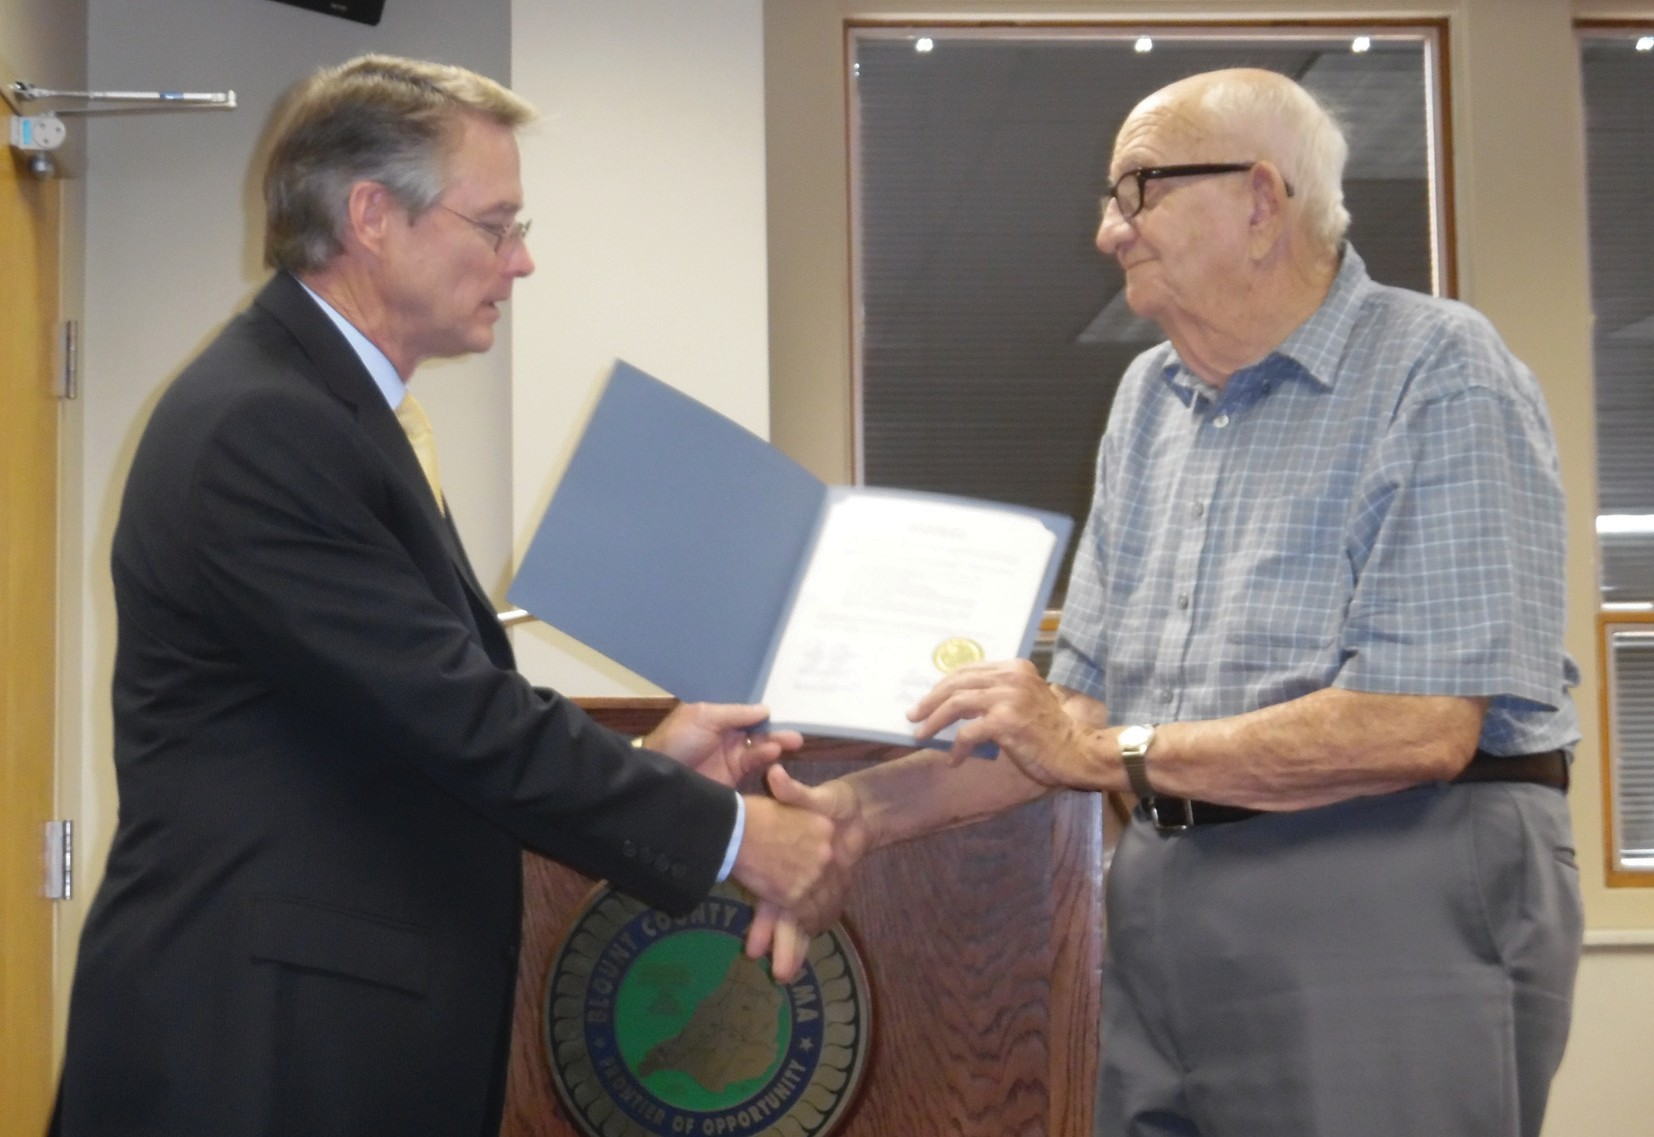 Commission Chairman Chris Green honors Eldridge Bynum with a commission resolution thanking him for his years of service and many enhancements to Palisades Park while he served on the Palisades Park Board.